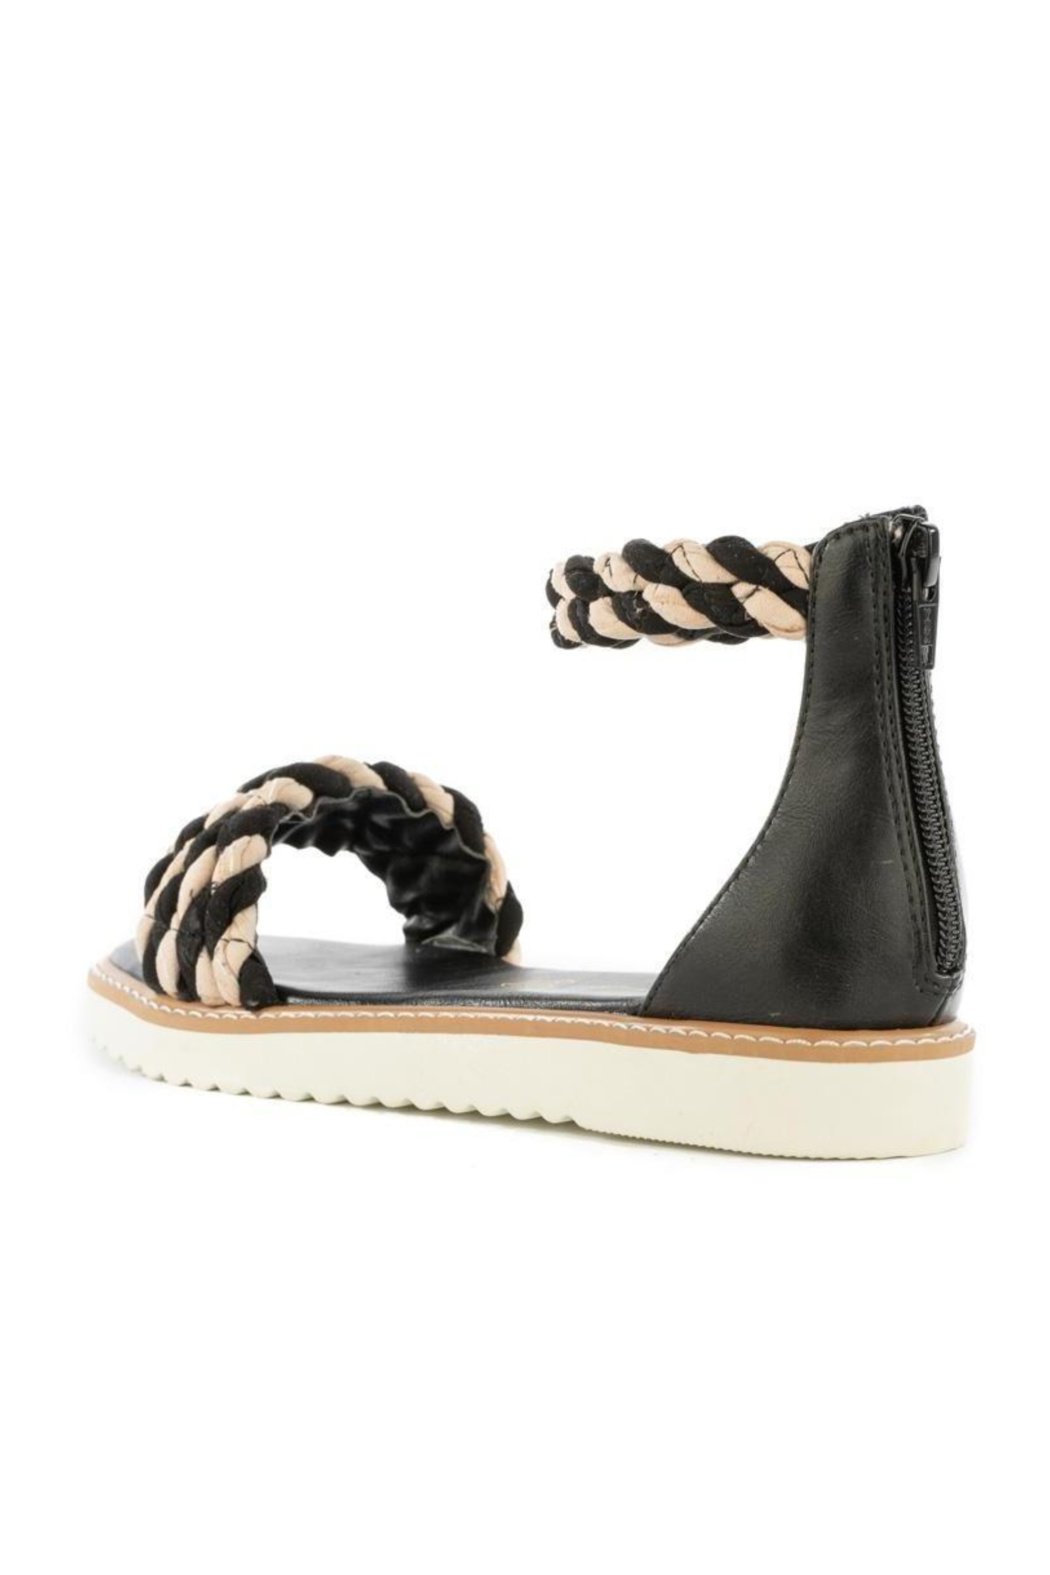 BC Footwear On a Pedestal Twisted Sandal - Front Full Image